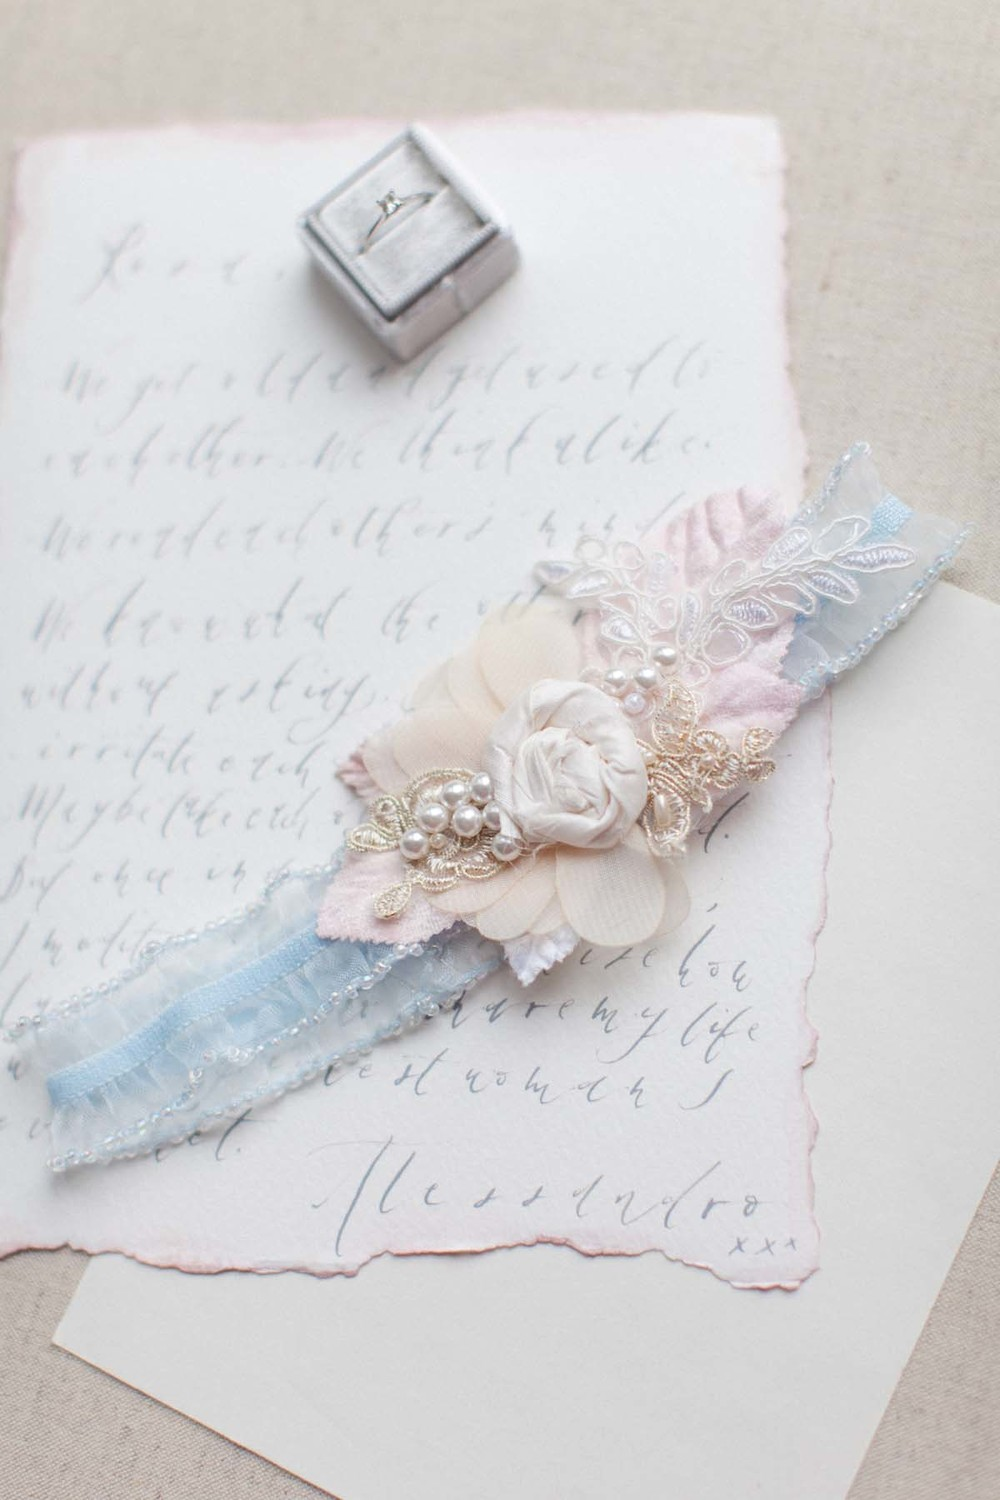 victoria millesime, bridal garters, bridal accessories, wedding garters